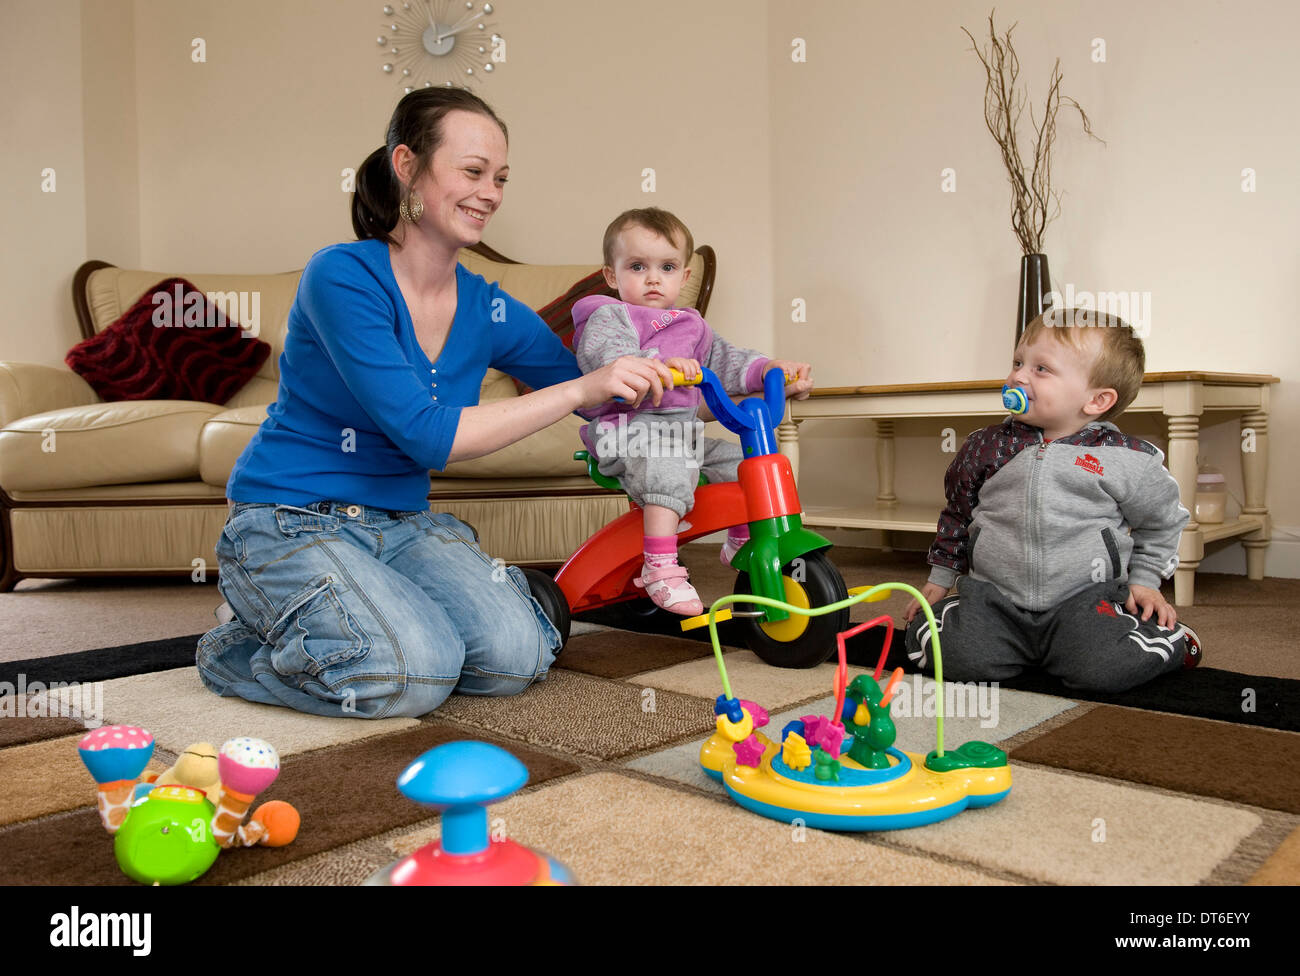 A young mother playing with her two children at their home. - Stock Image